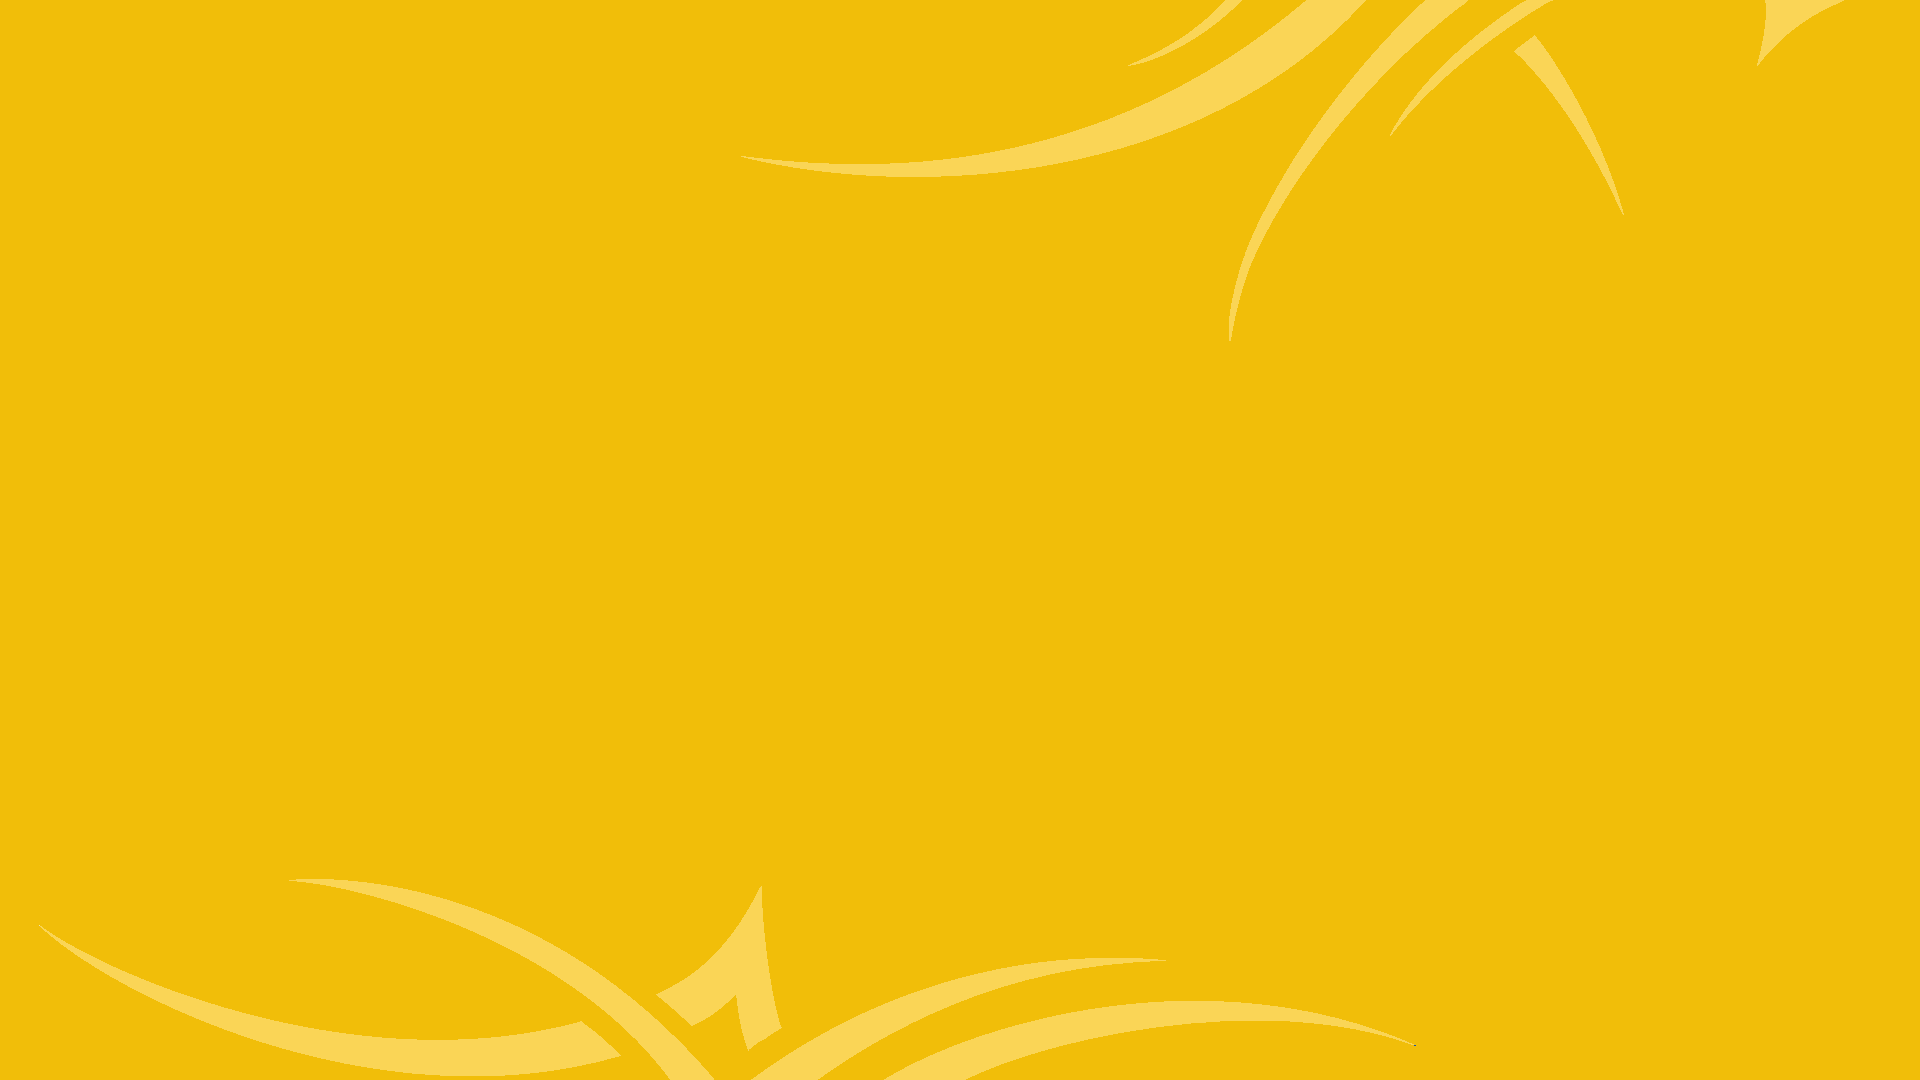 yellow windows 8 background wallpaper 1221051